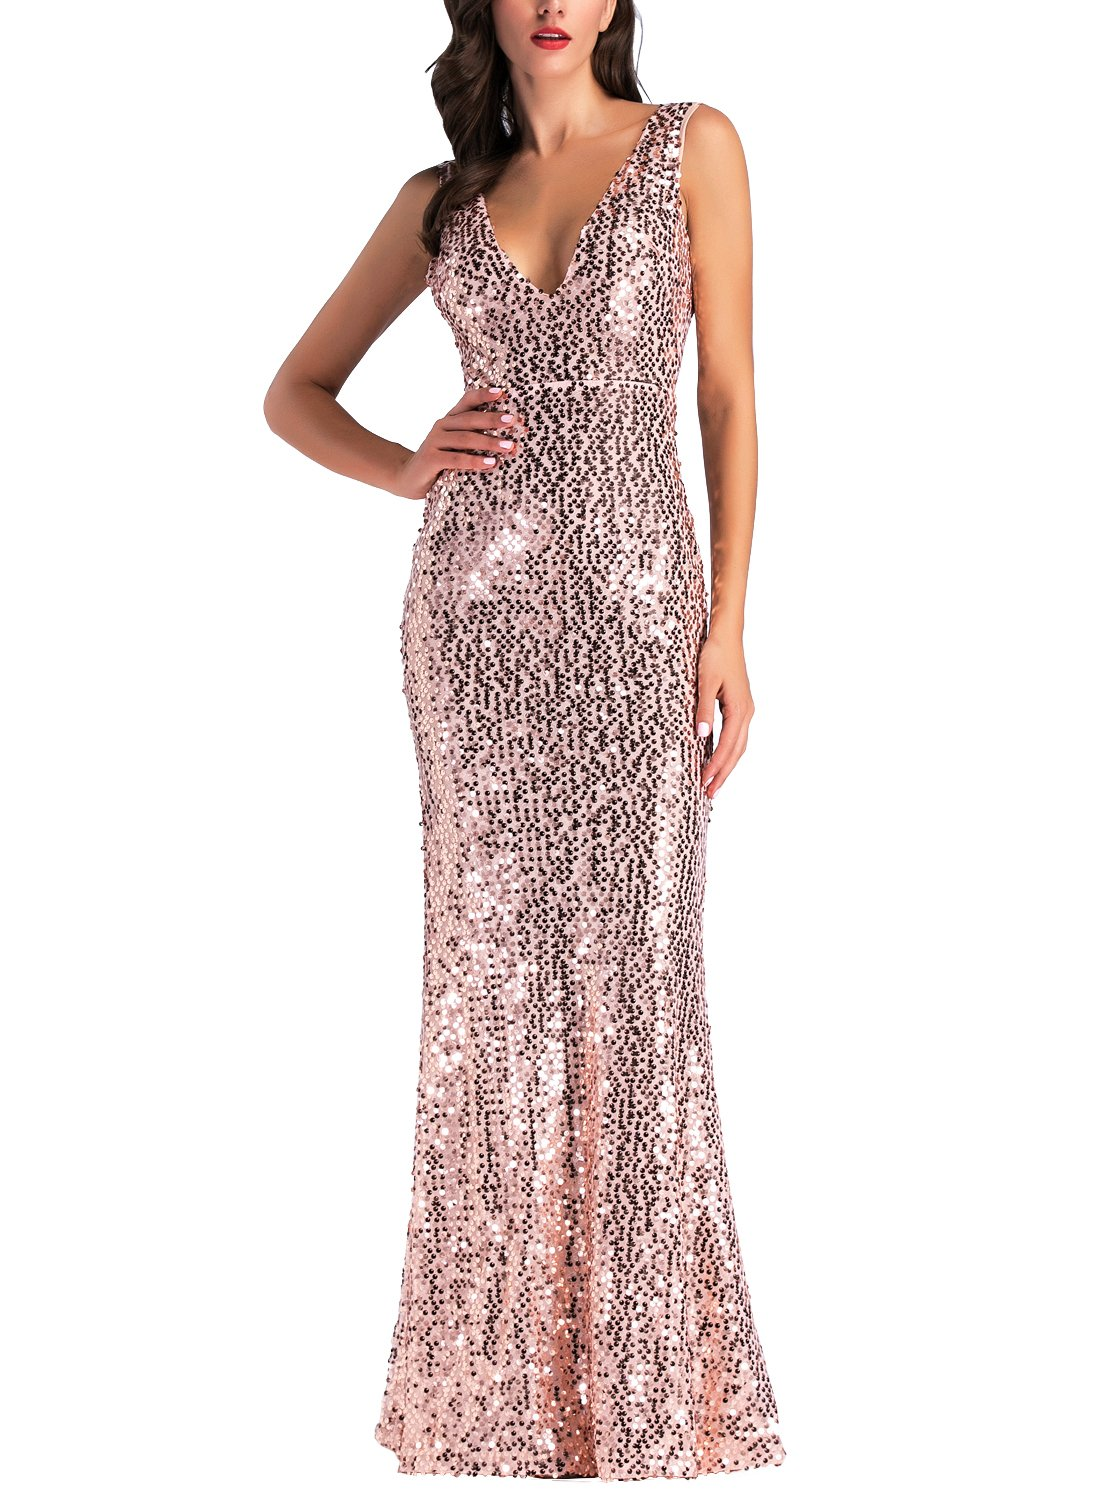 IHOT Women's Rose Gold Sequin Bridesmaid